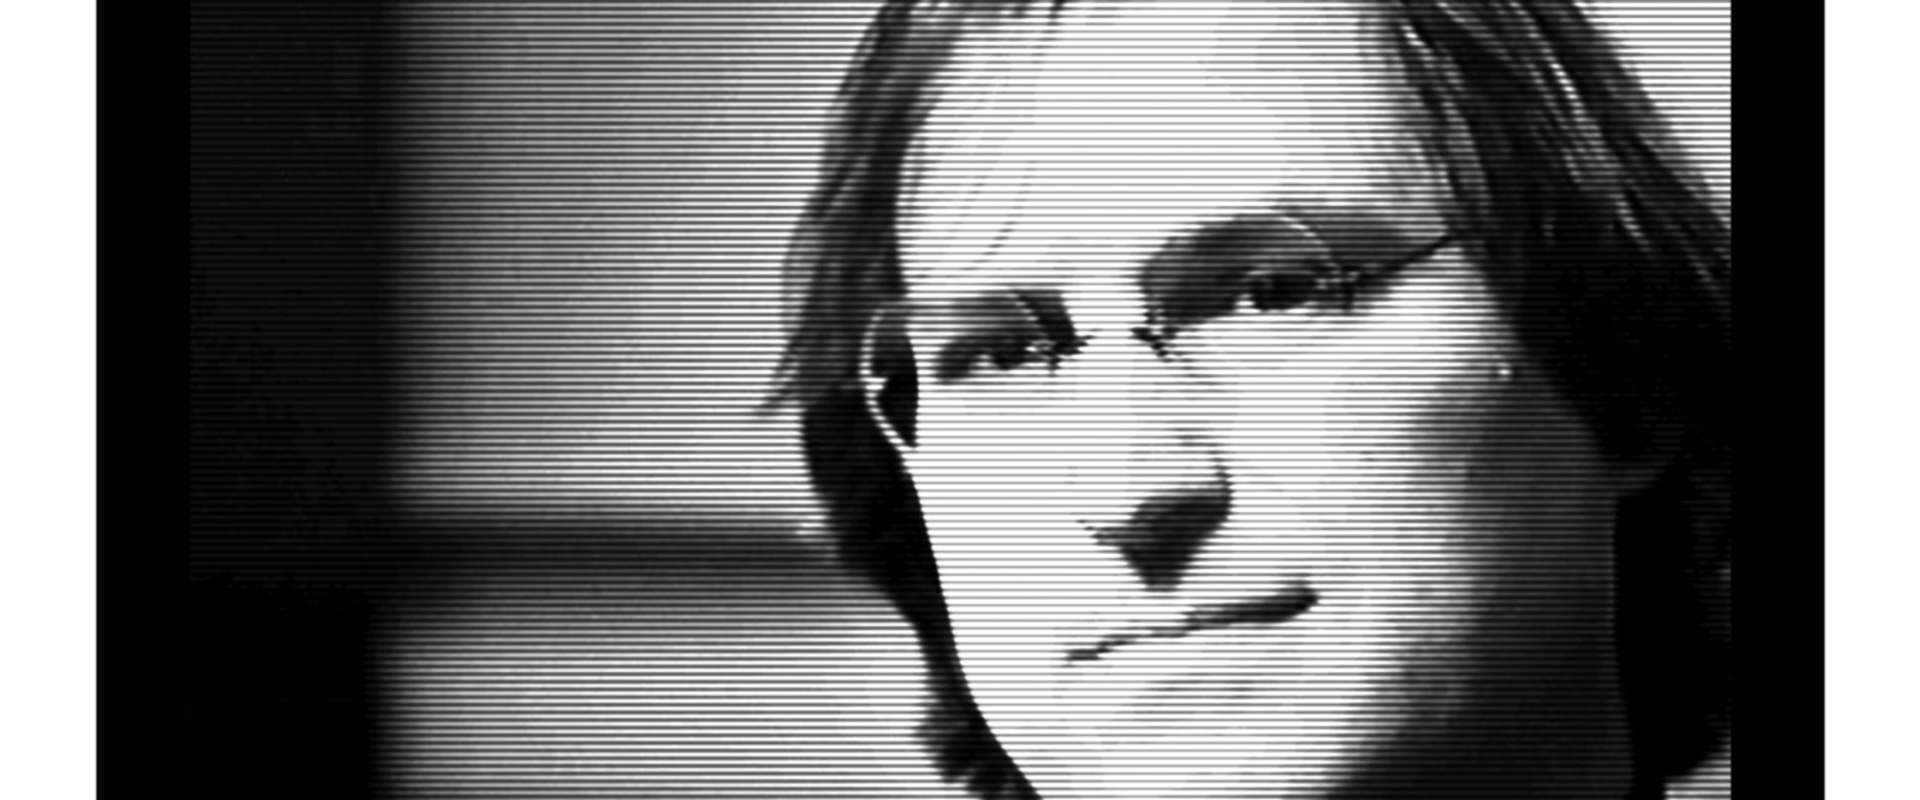 Steve Jobs: The Lost Interview background 1